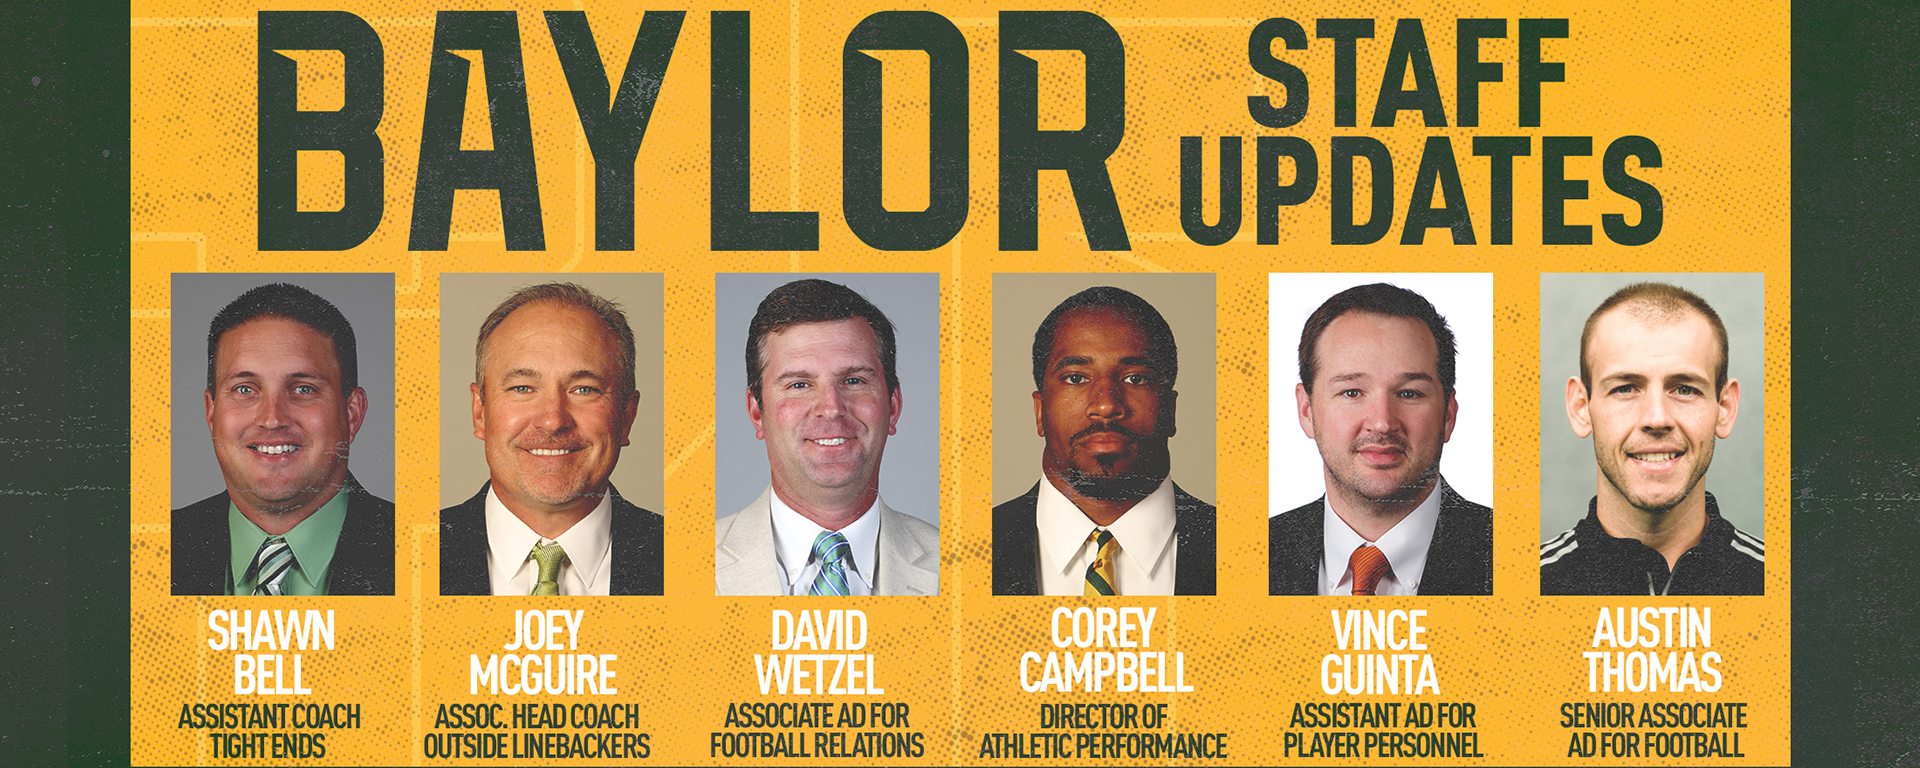 Aranda Announces Staff Retention And Support Additions Baylor University Athletics